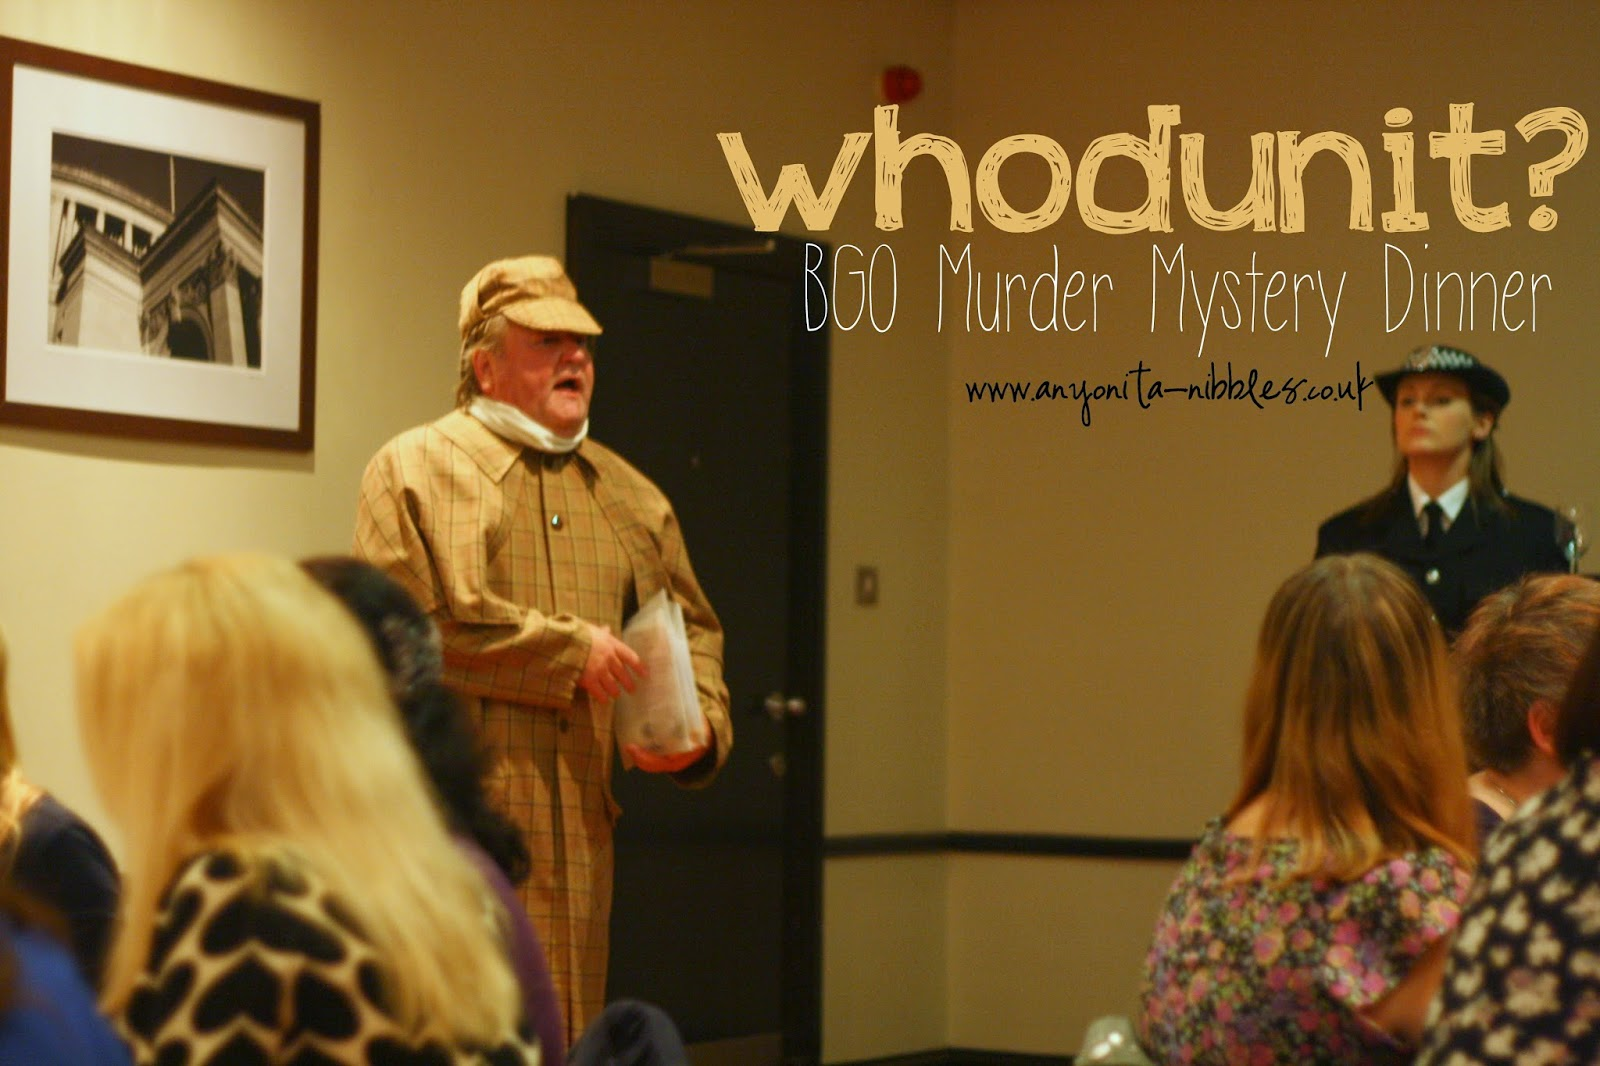 Ask yourself whodunit? at one of BGO's fantastic murder mystery dinners | Anyonita-Nibbles.co.uk